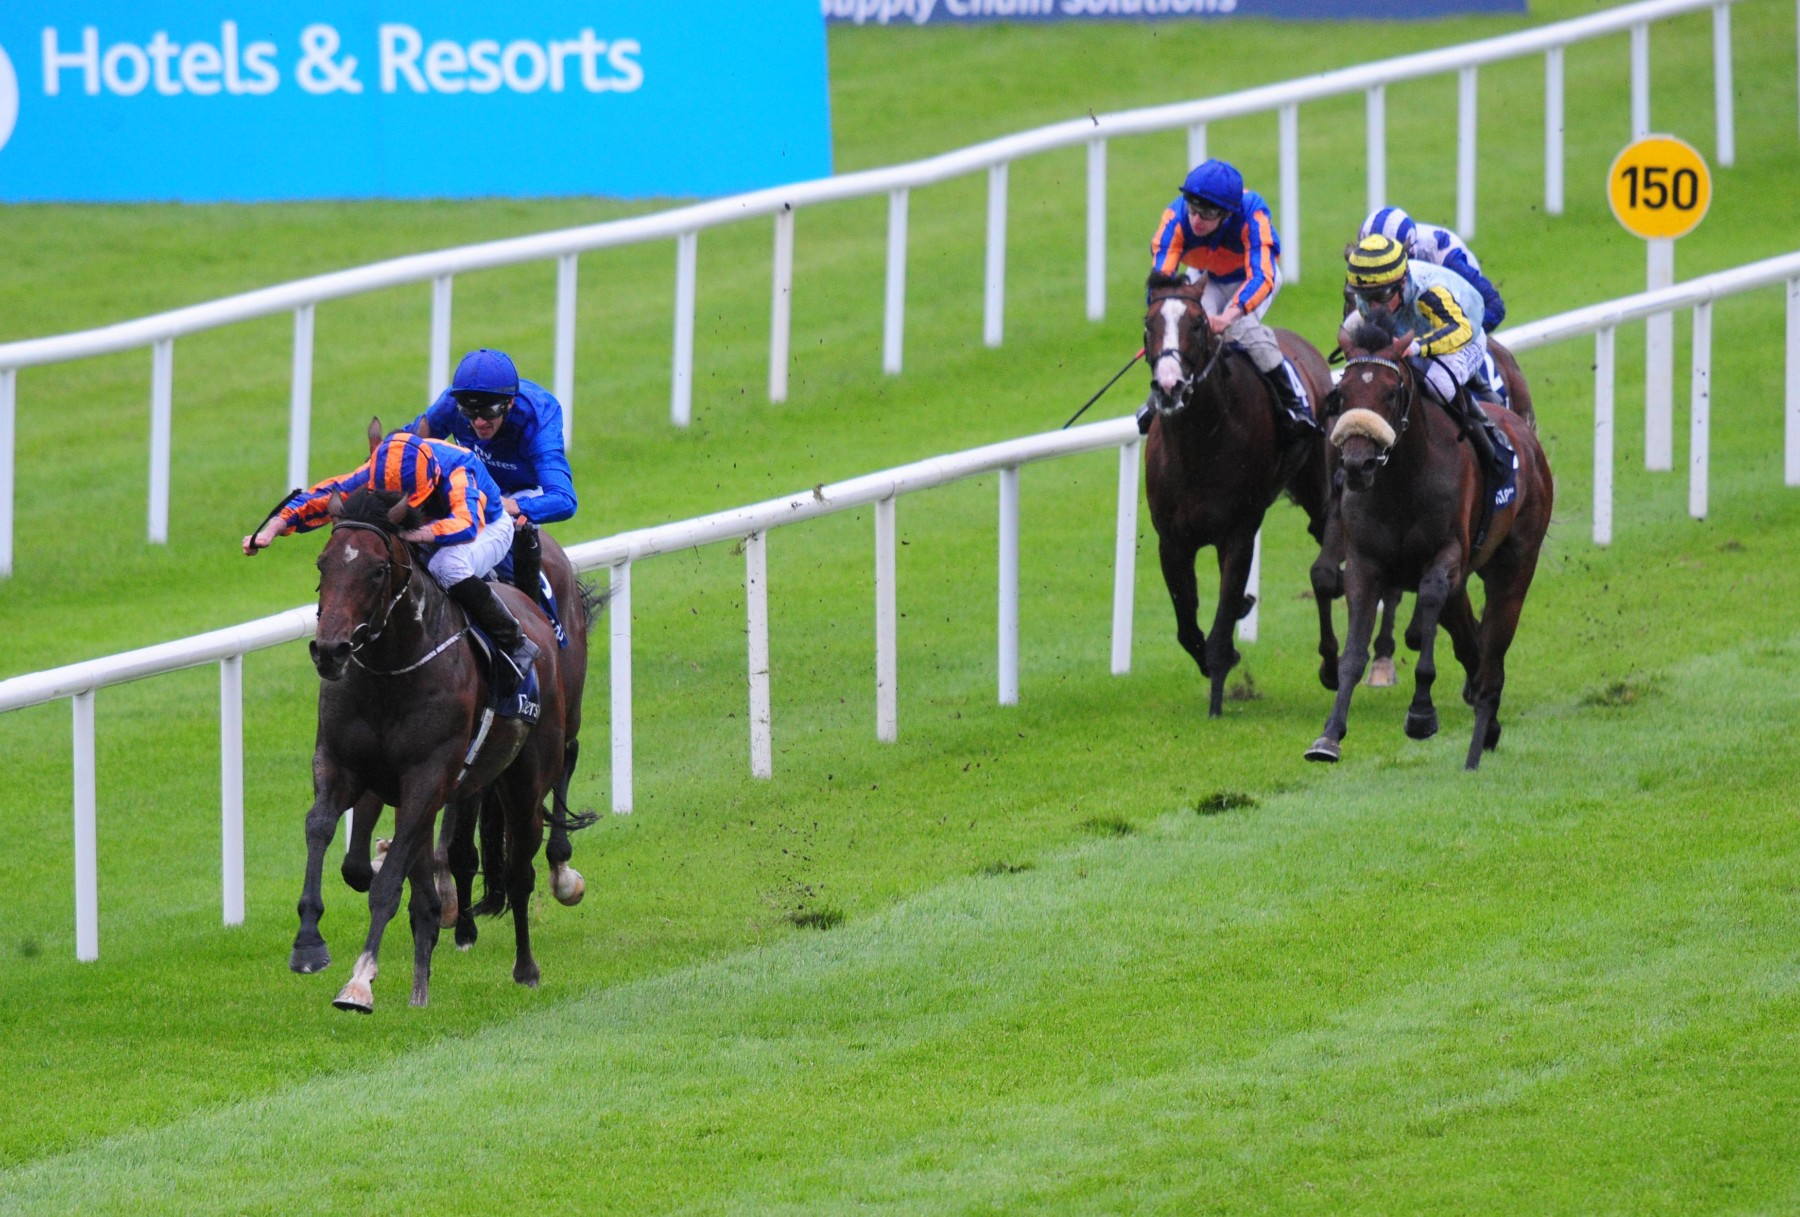 ST JAMES'S PALACE STAKES (GR1) - Churchill dans les traces de Gleneagles